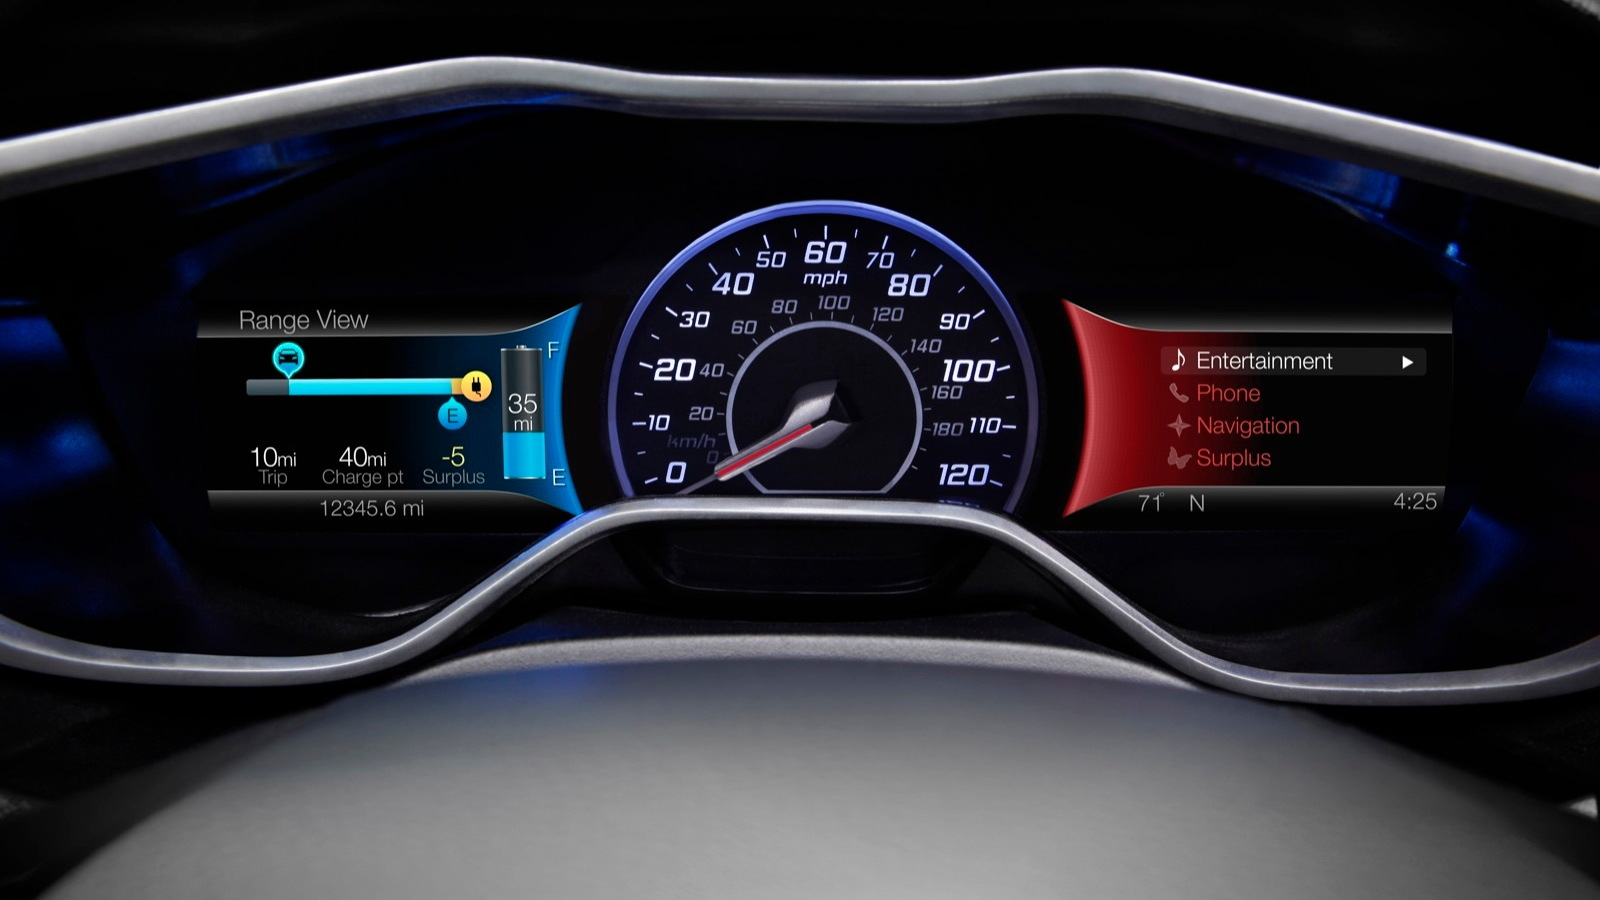 2012 Ford Focus Electric - gauge cluster